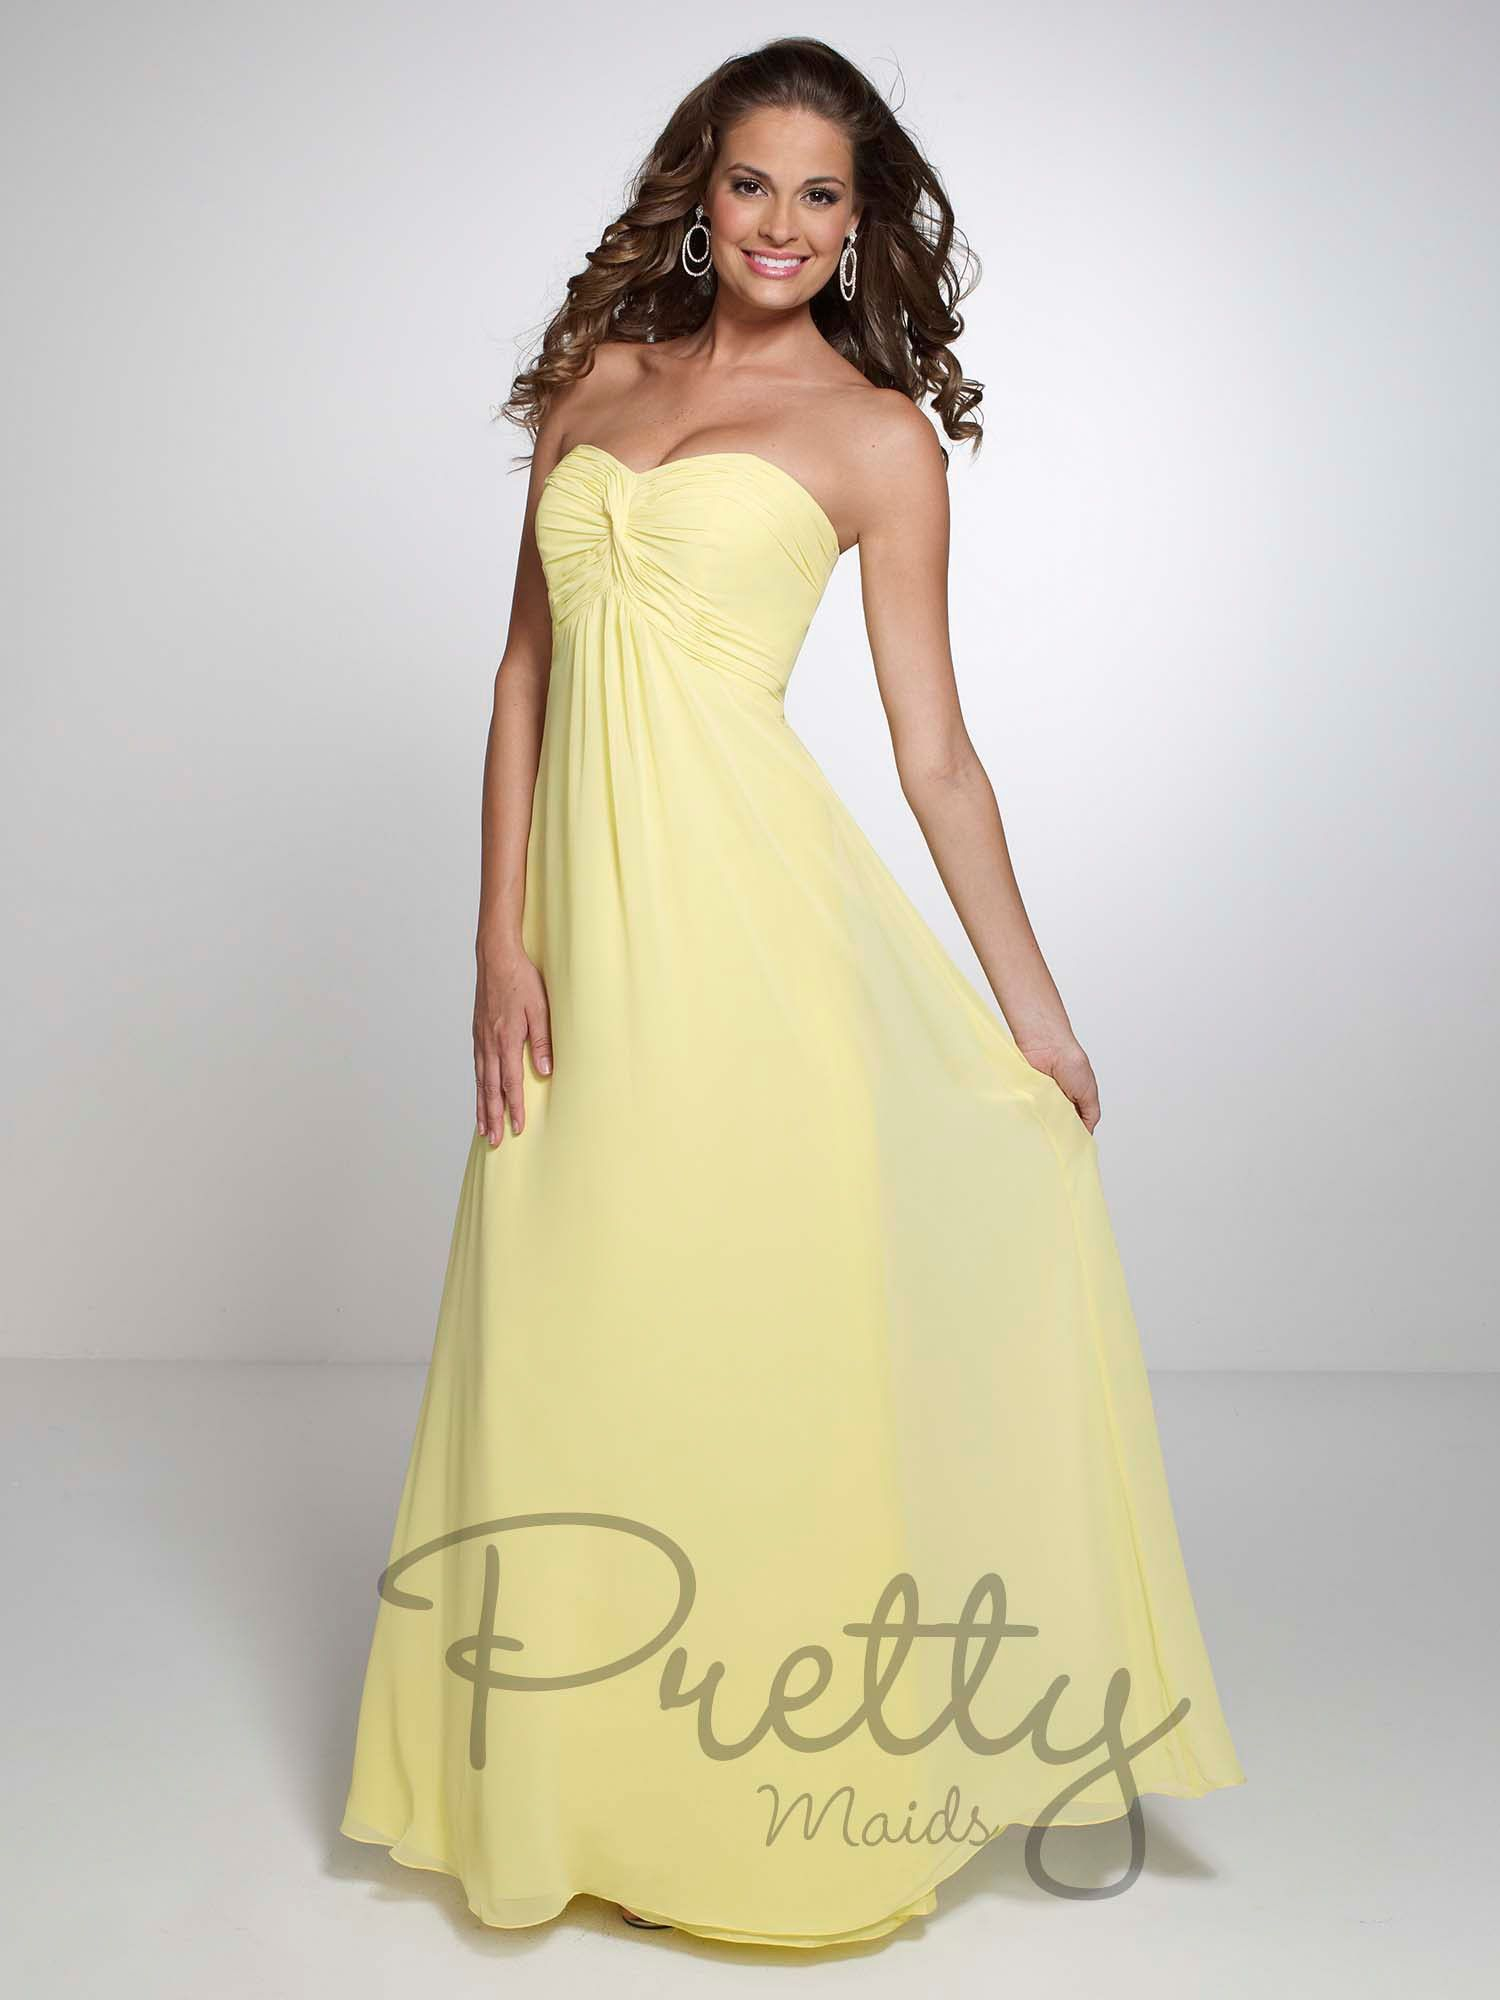 Christina wu 22544 long dress chiffon sweetheart bust empire waist shop at happy bridesmaids for designer bridesmaid dresses maternity gowns junior and flower girl dresses cocktail and evening dresses in all colors ombrellifo Choice Image